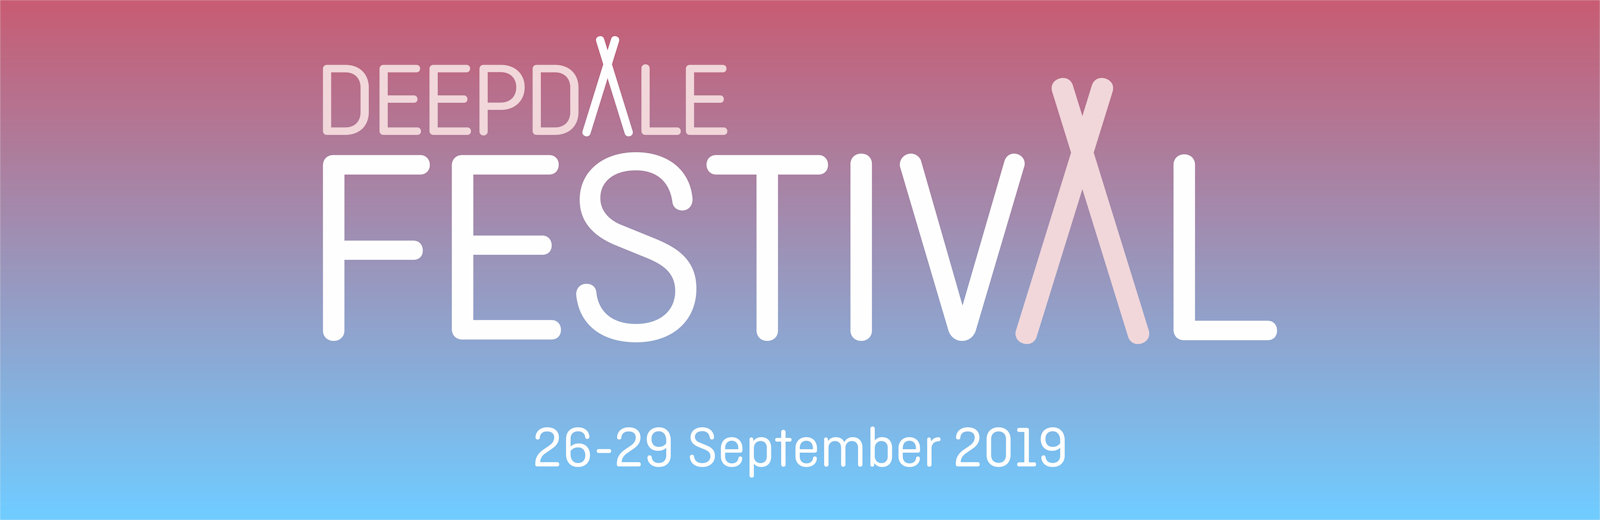 Deepdale Festival | 26th to 29th September 2019